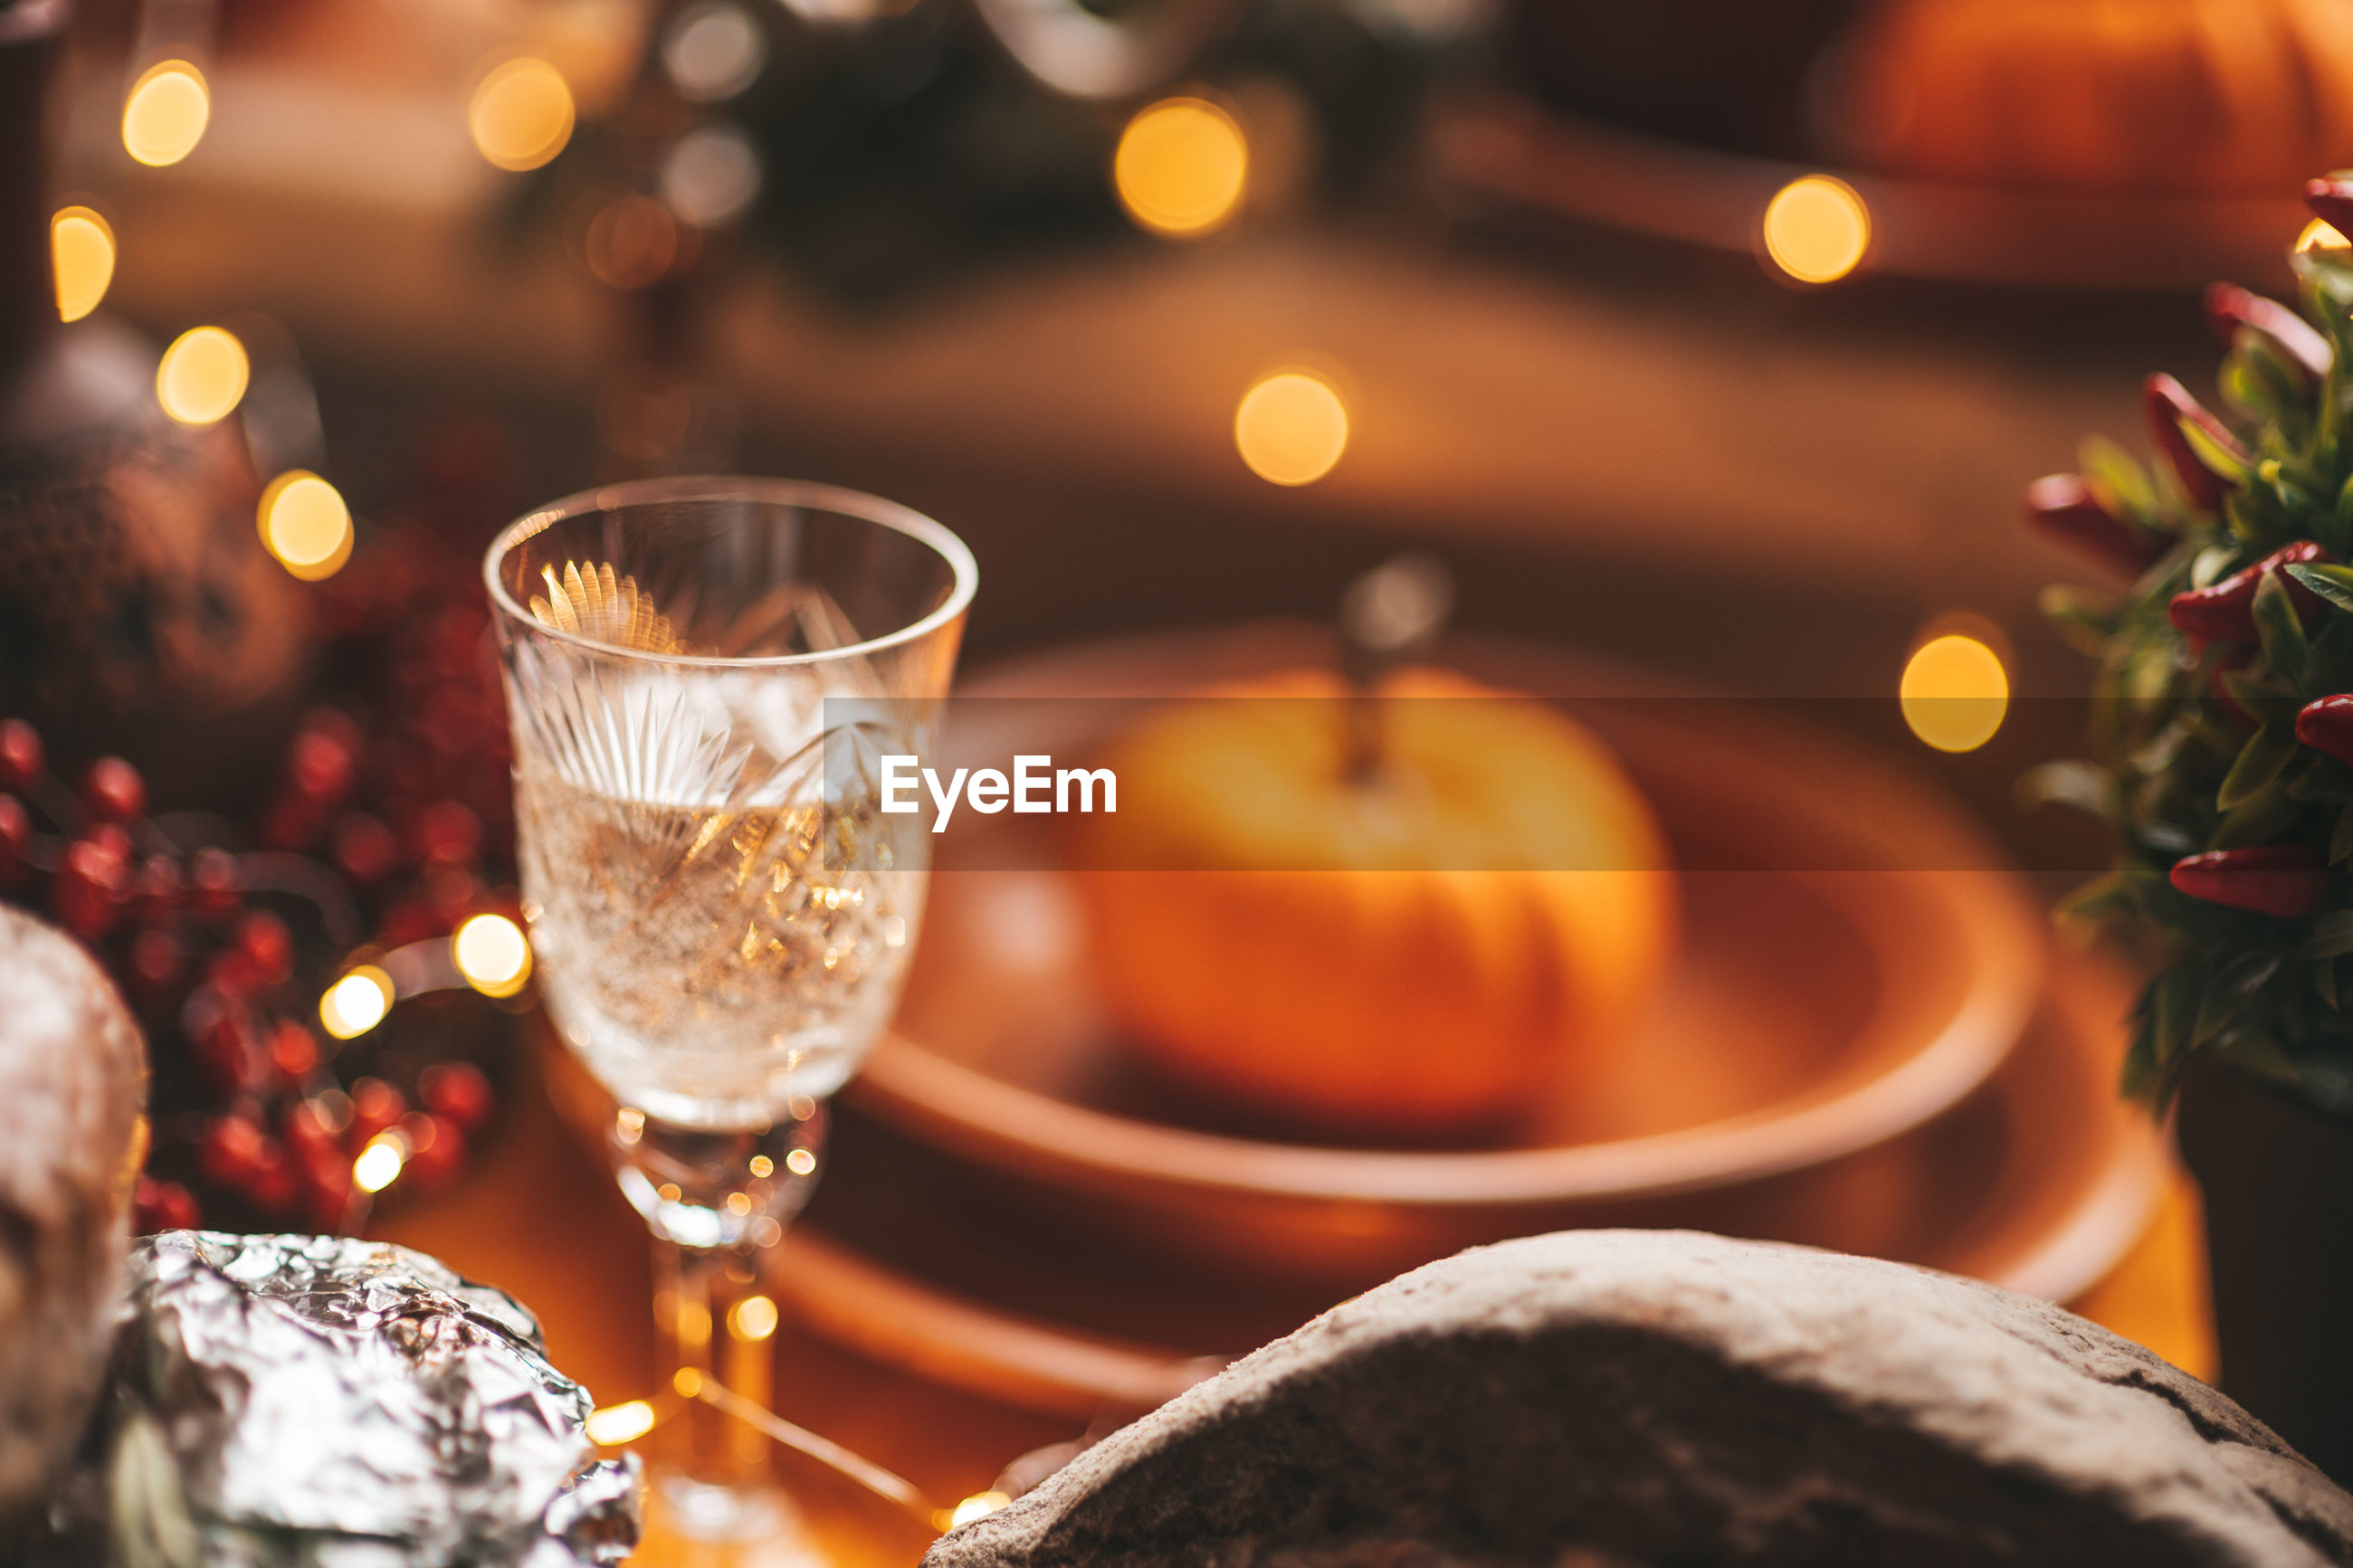 CLOSE-UP OF WINE GLASS ON TABLE AGAINST ILLUMINATED CHRISTMAS